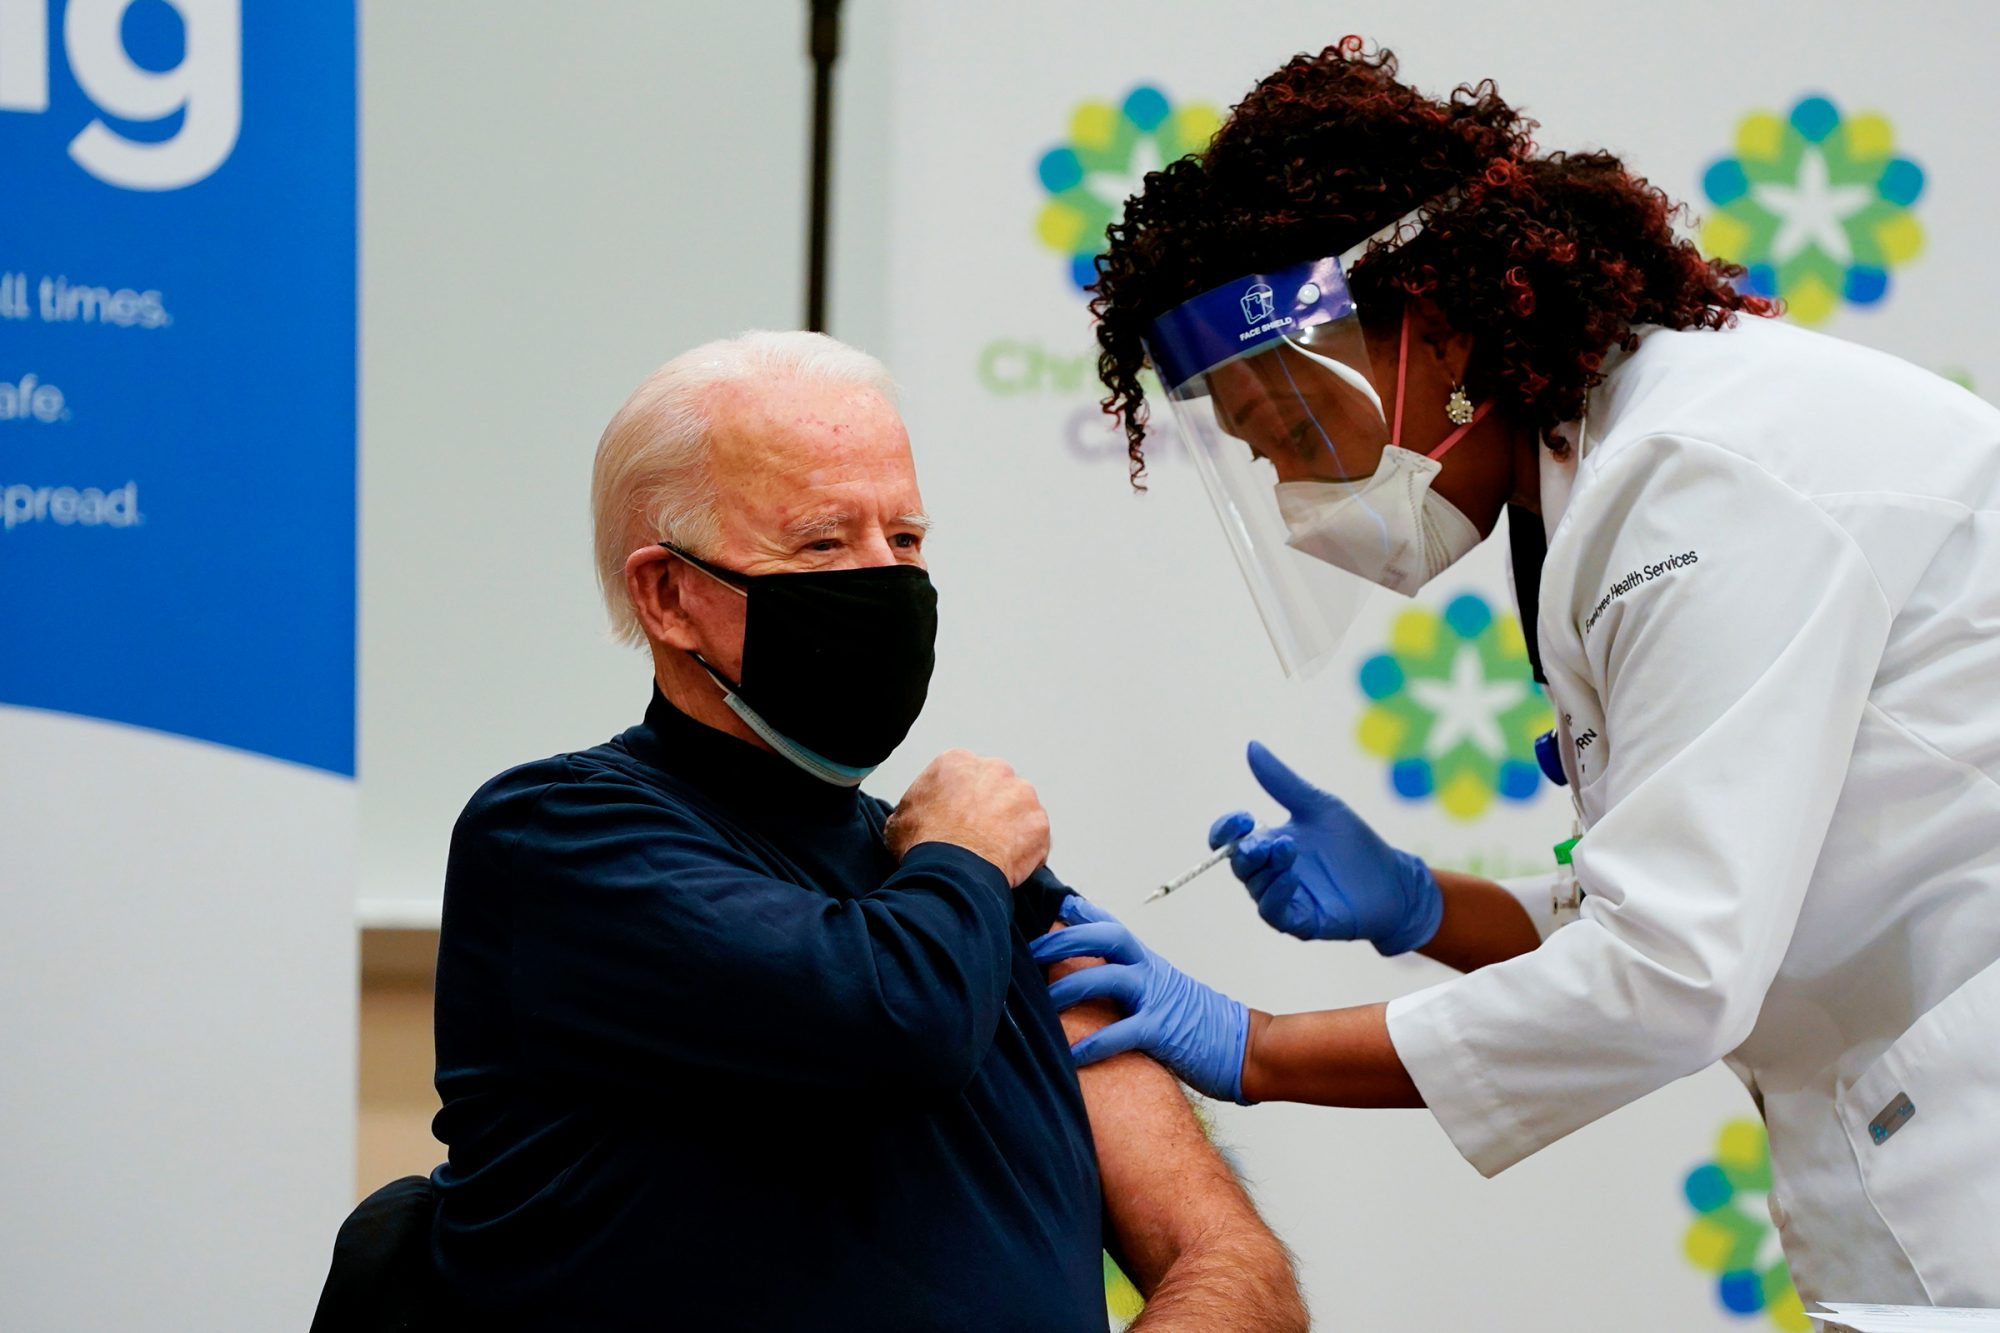 US President-elect Joe Biden receives a Covid-19 vaccination from Tabe Masa, Nurse Practitioner and Head of Employee Health Services, at the Christiana Care campus in Newark, Delaware